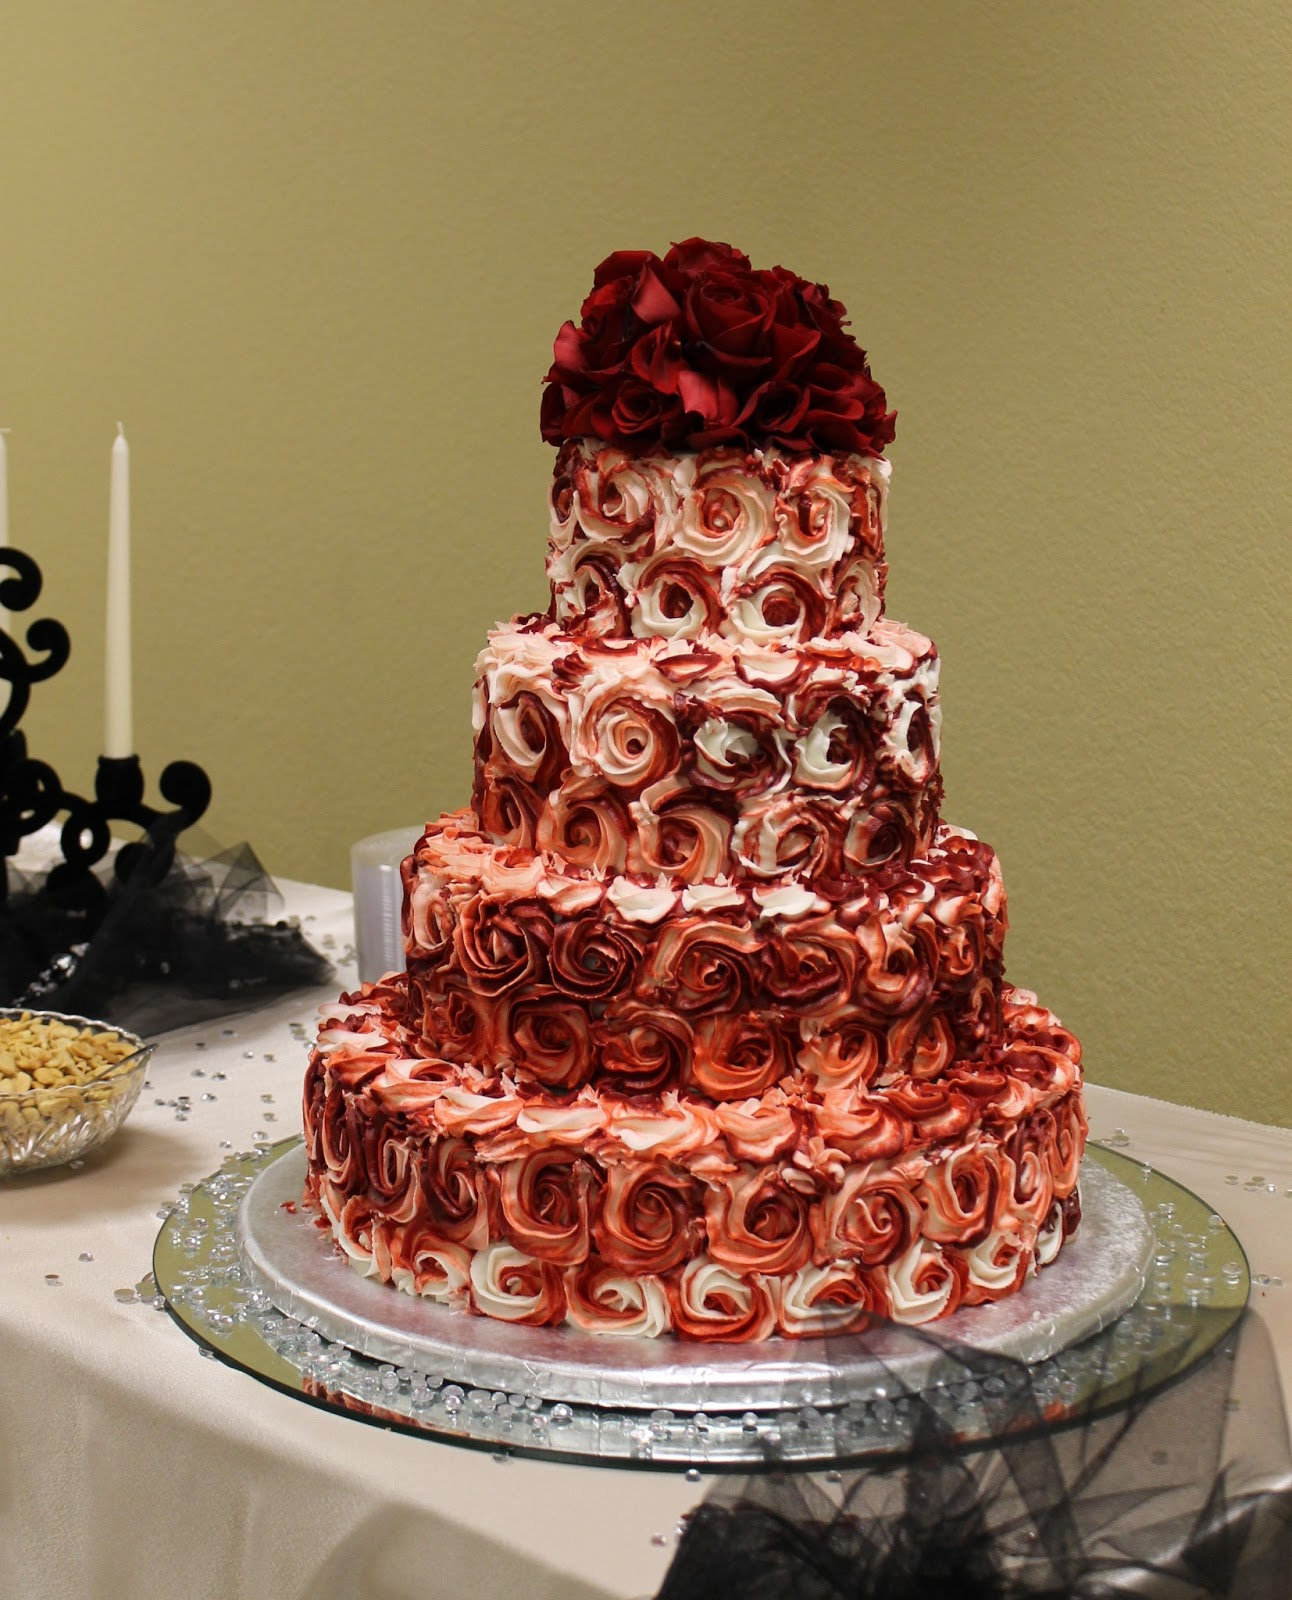 Wedding Cakes Red And Cream The Simple Cake February